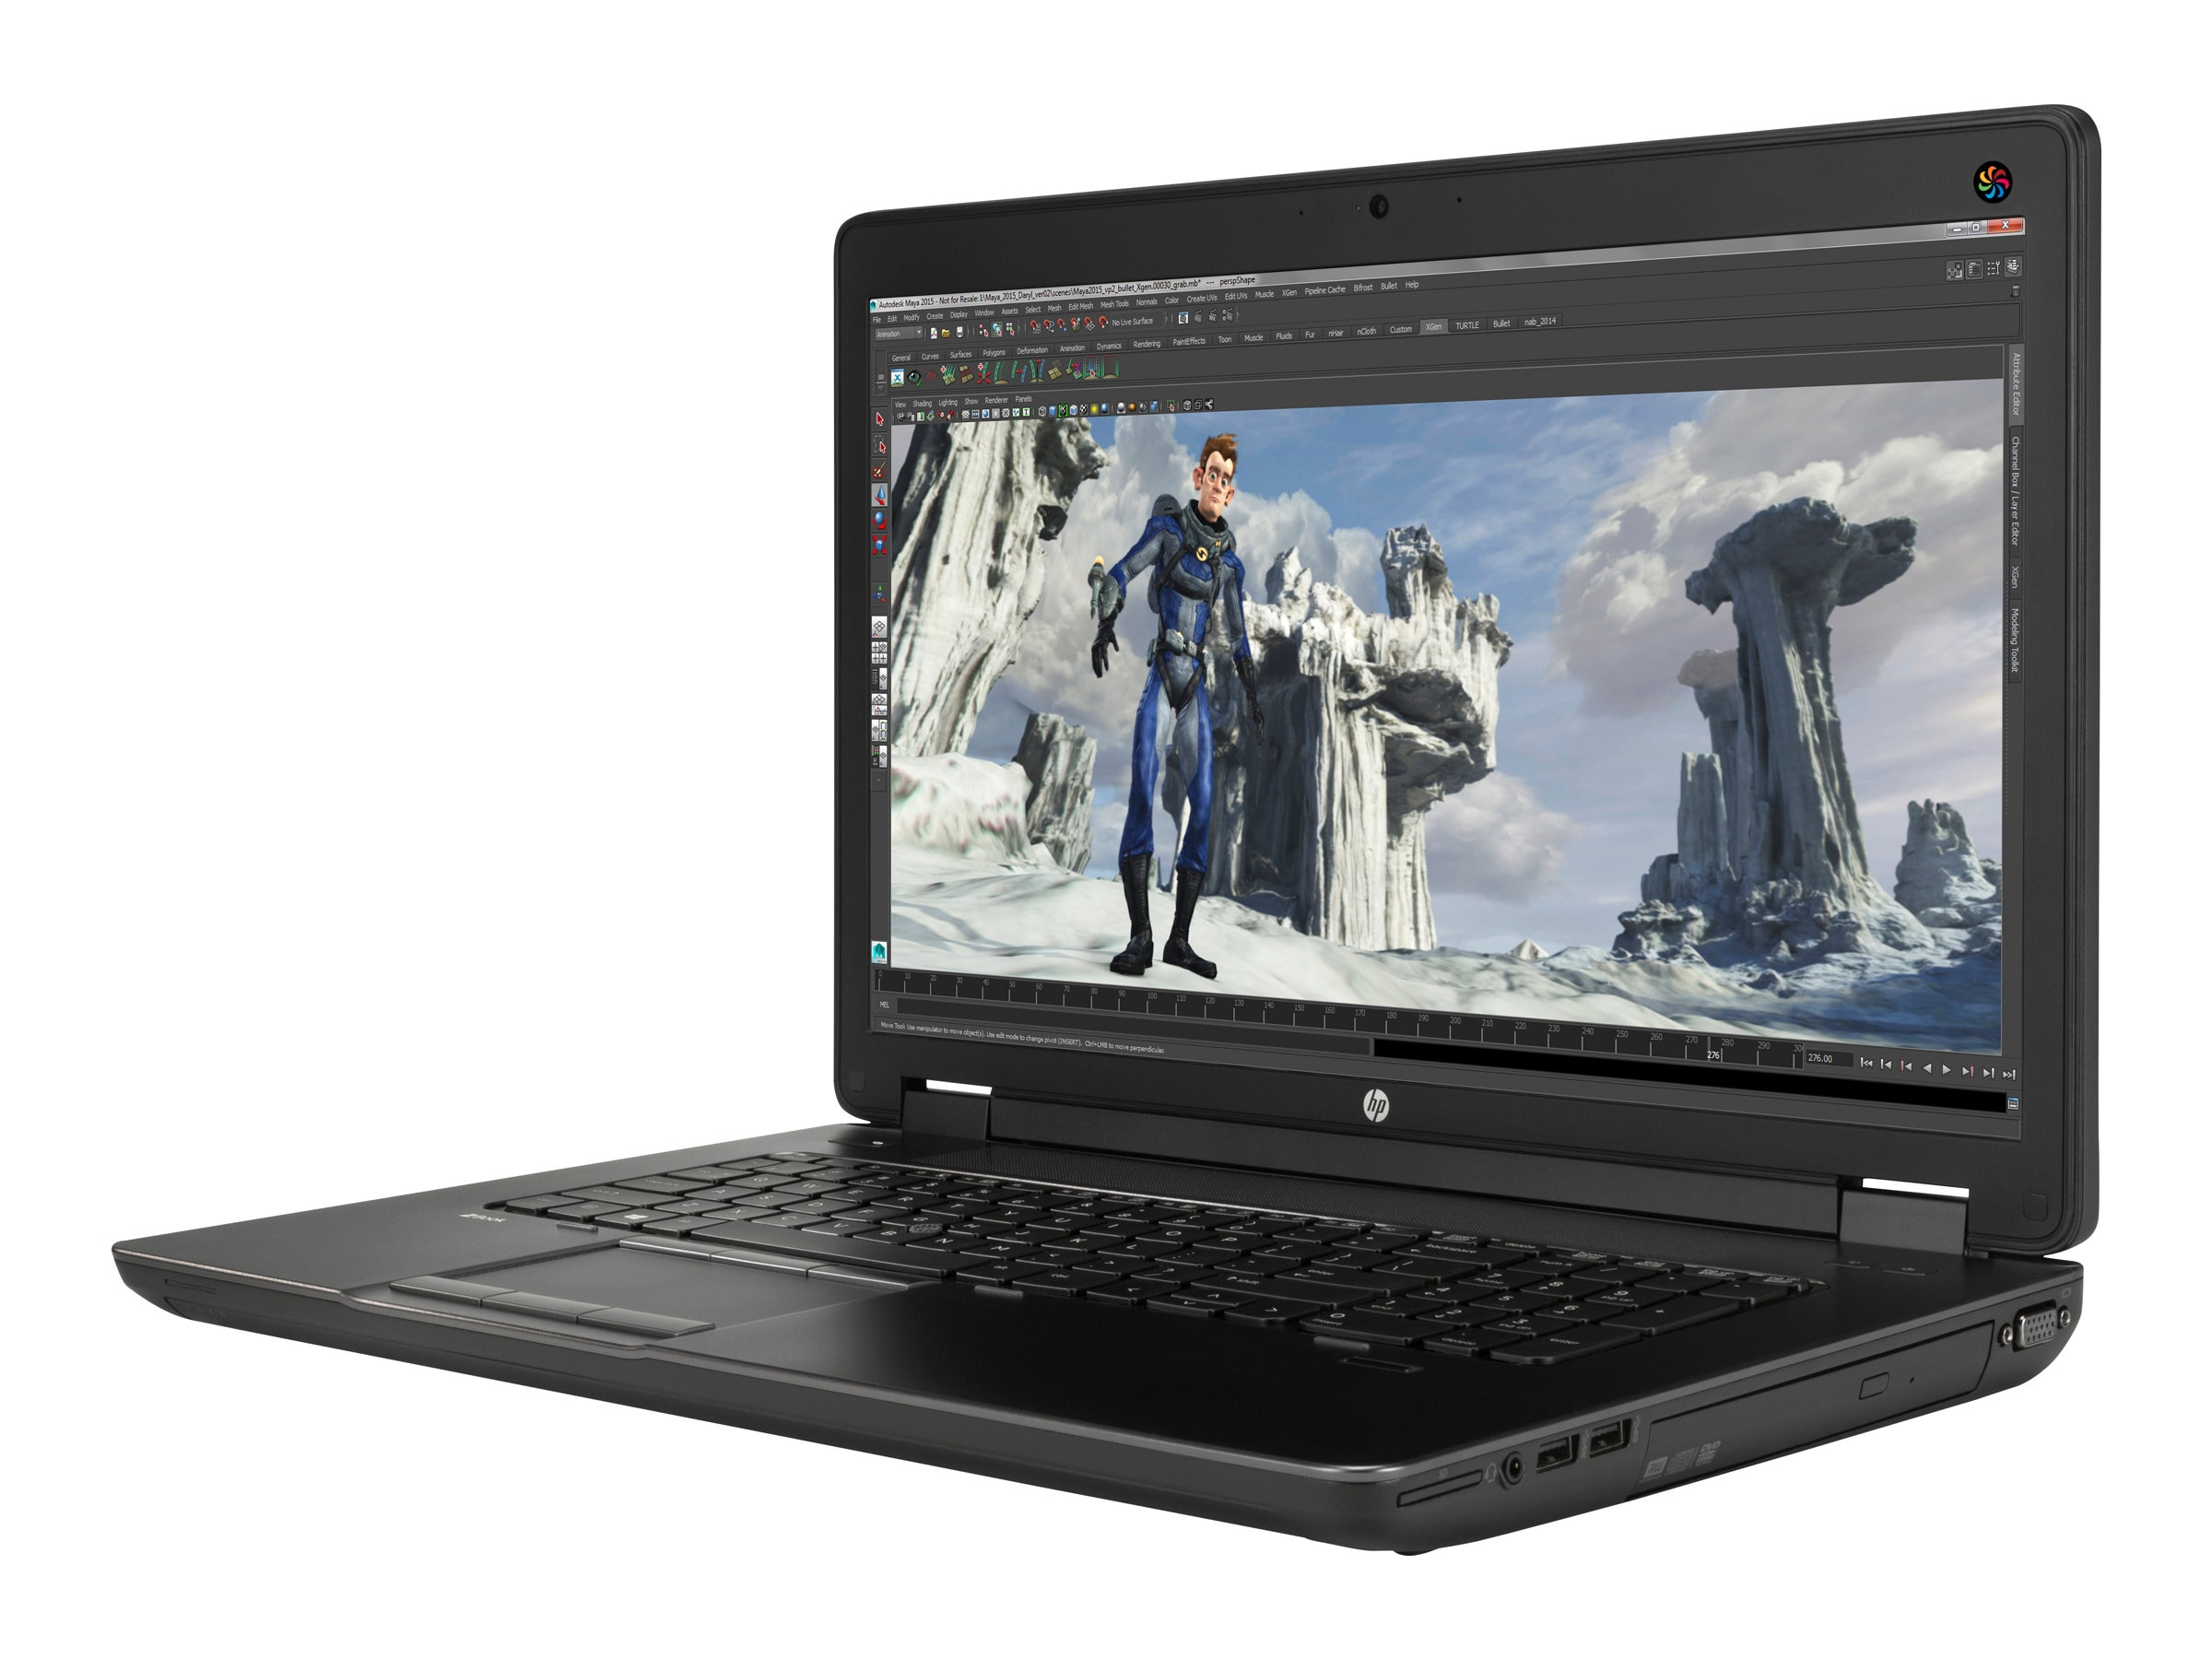 HP ZBook 17 Core i7-4940MX 32GB 512GB SSD 17.3, P5F78US#ABA, 30666102, Notebooks